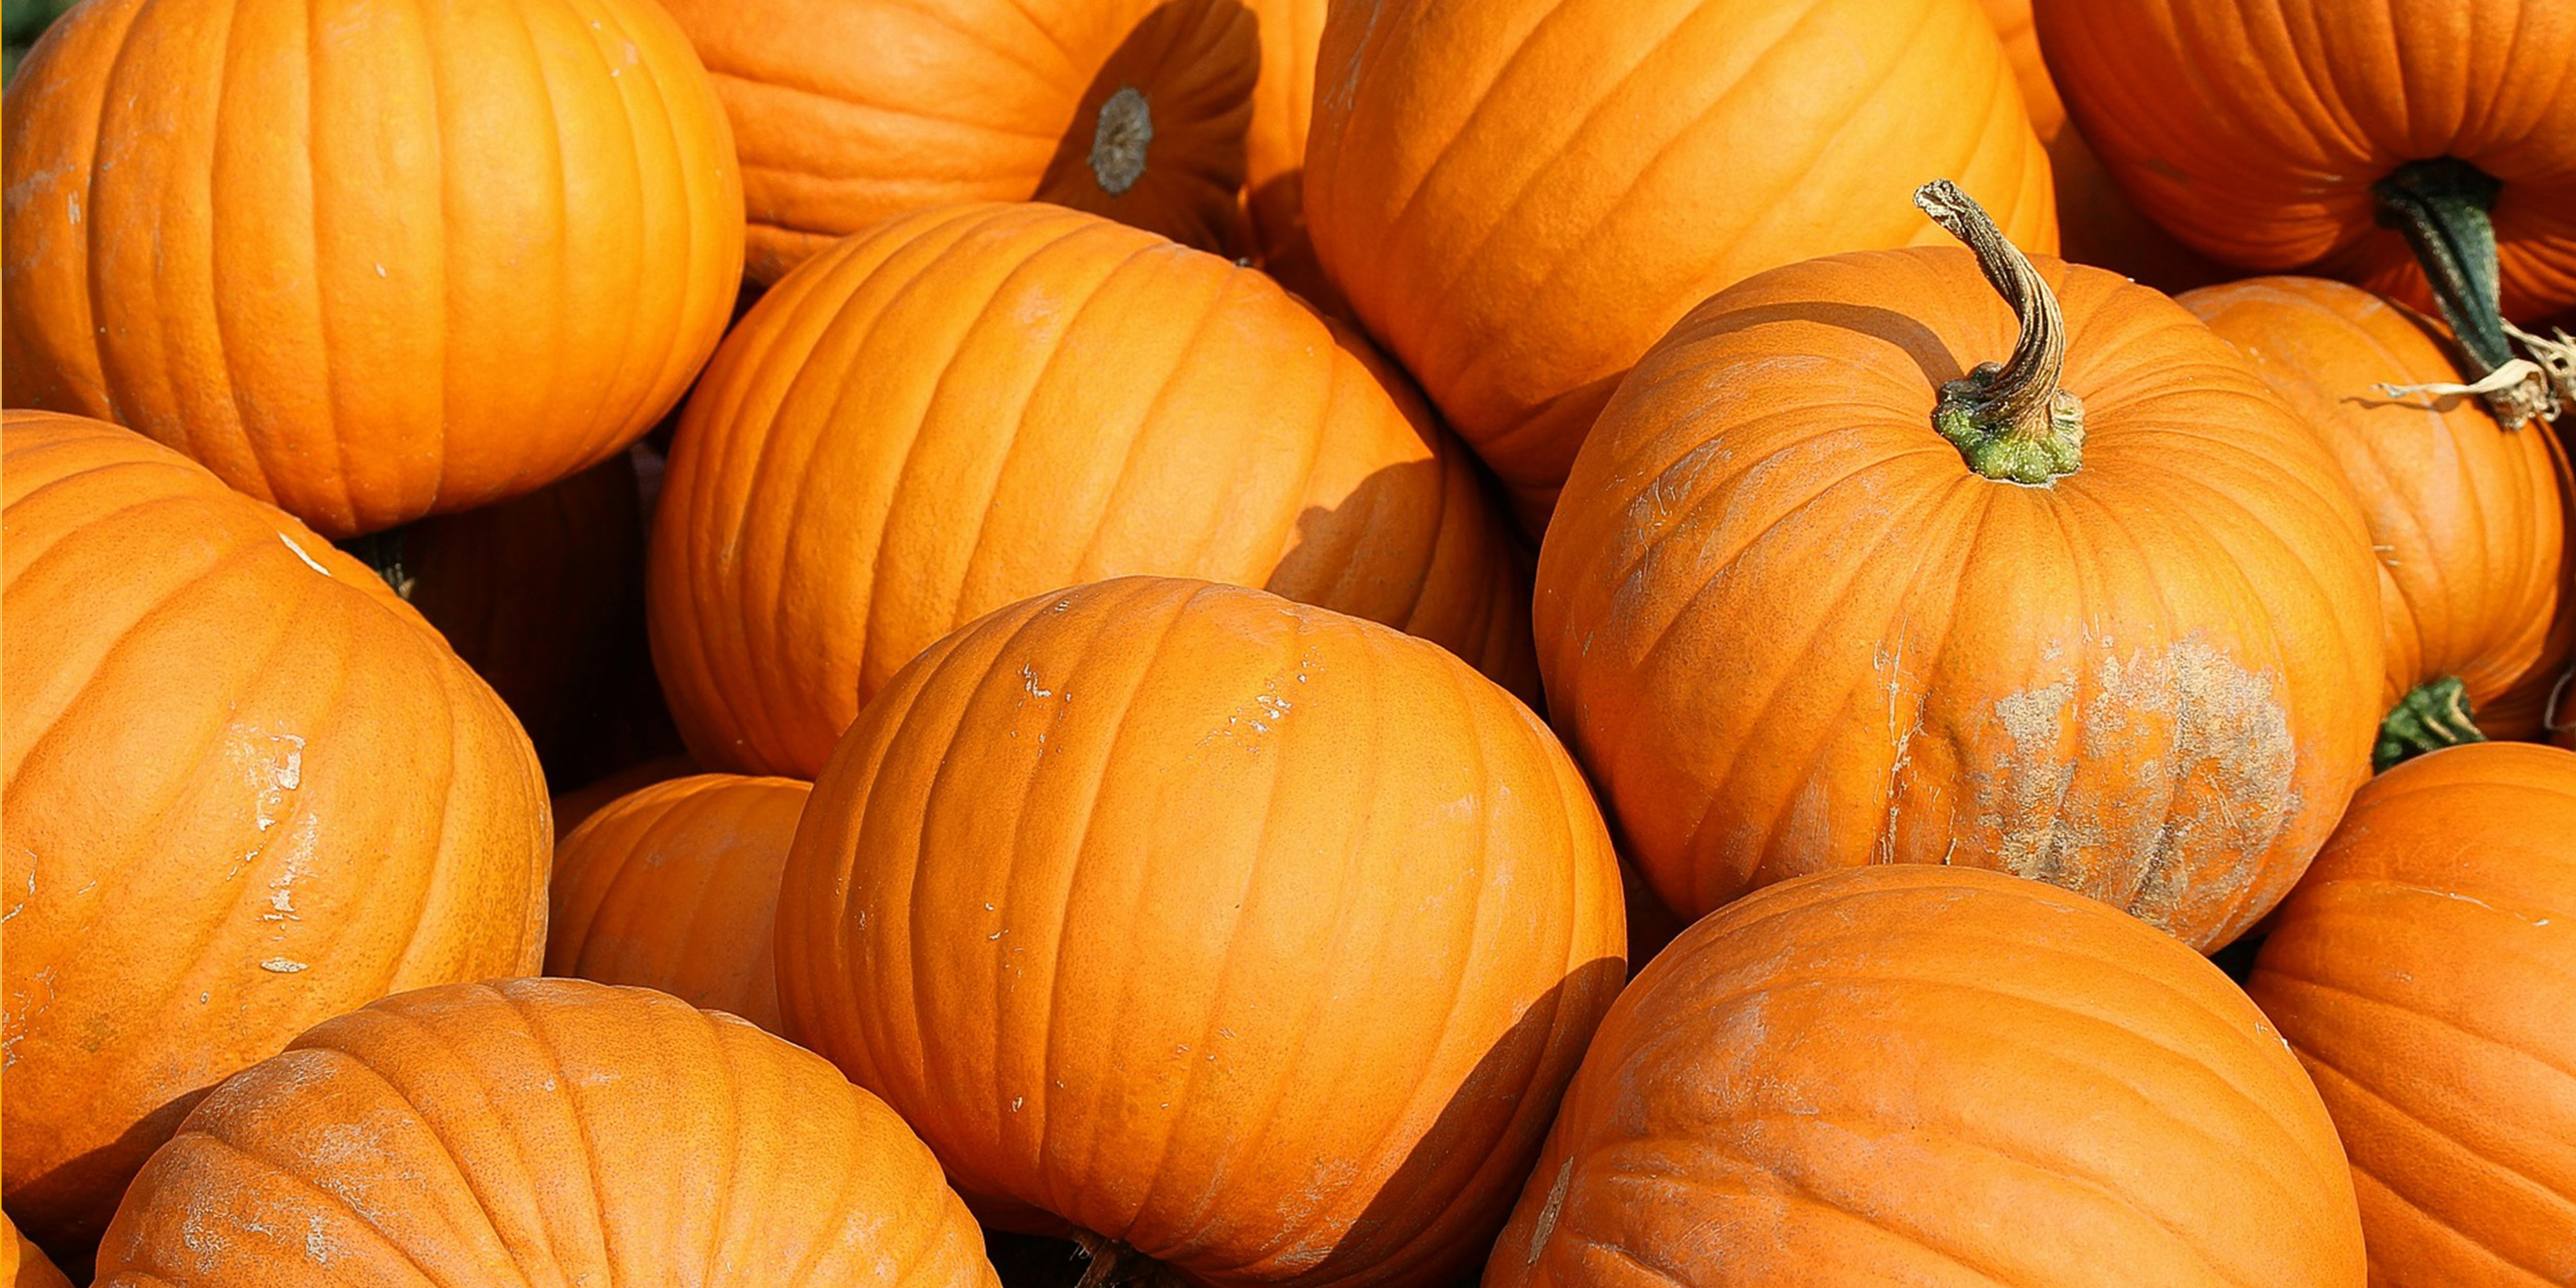 Season fun with science and pumpkins